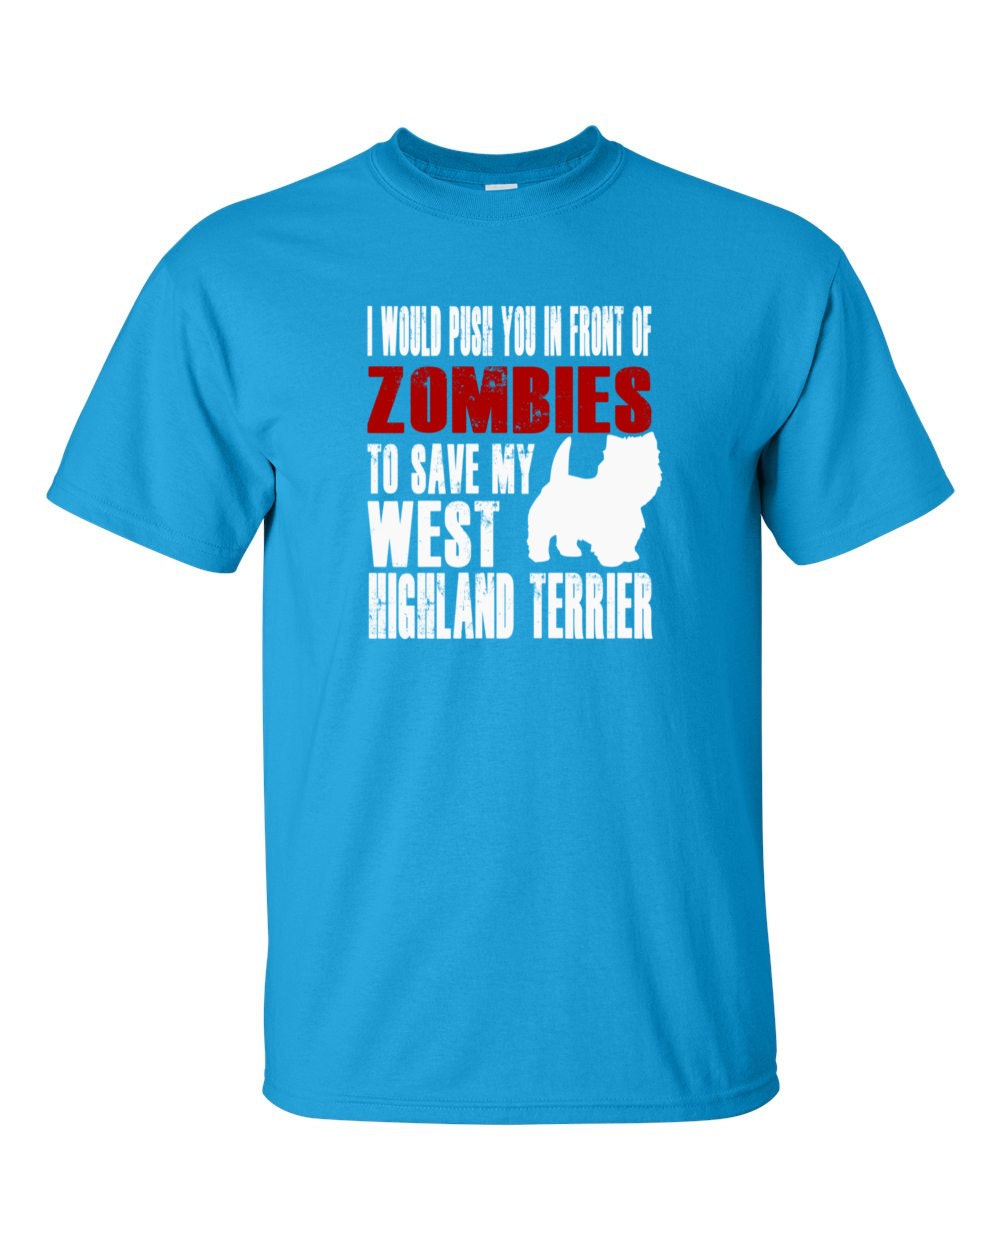 West Highland Terrier T-shirt - I Would Push You In Front Of Zombies To Save My West Highland Terrier - My Dog West Highland Terrier T-shirt